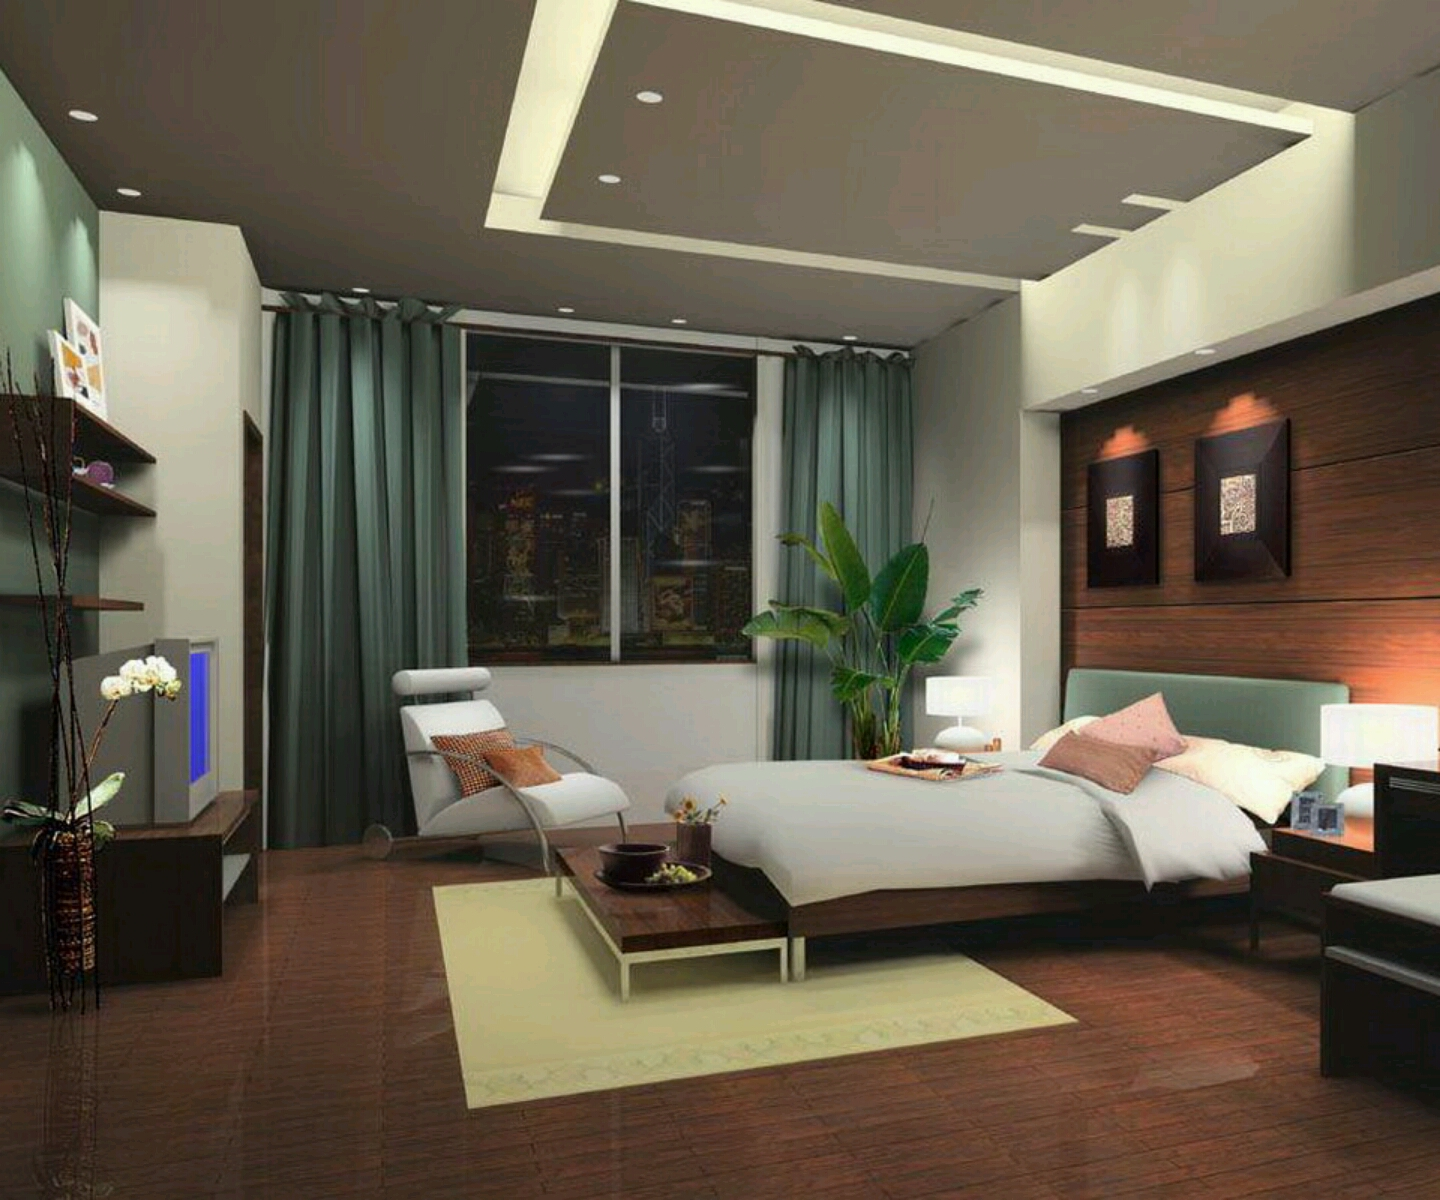 New home designs latest.: Modern bedrooms designs best ideas.